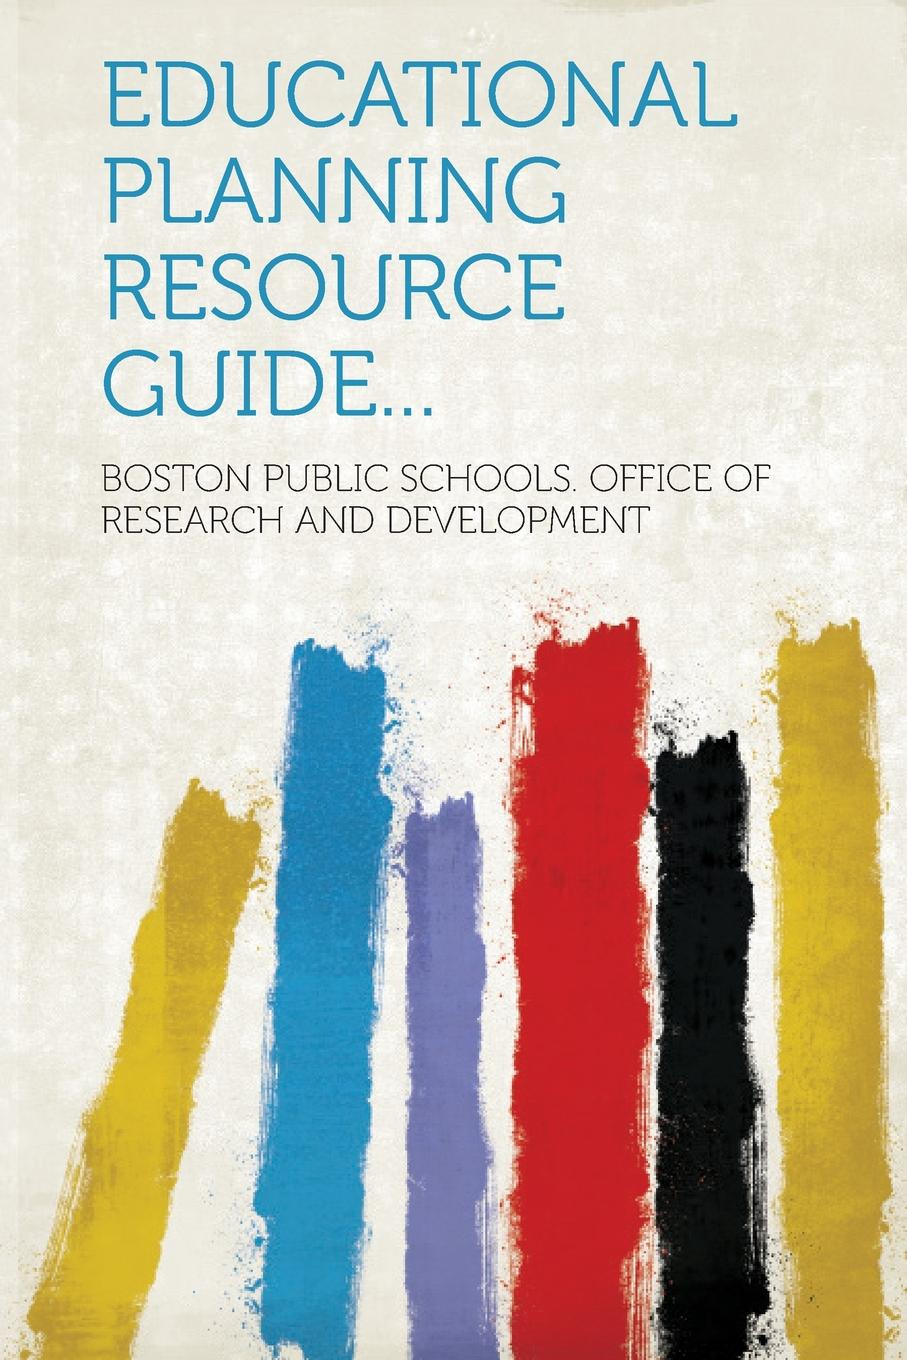 Educational Planning Resource Guide...